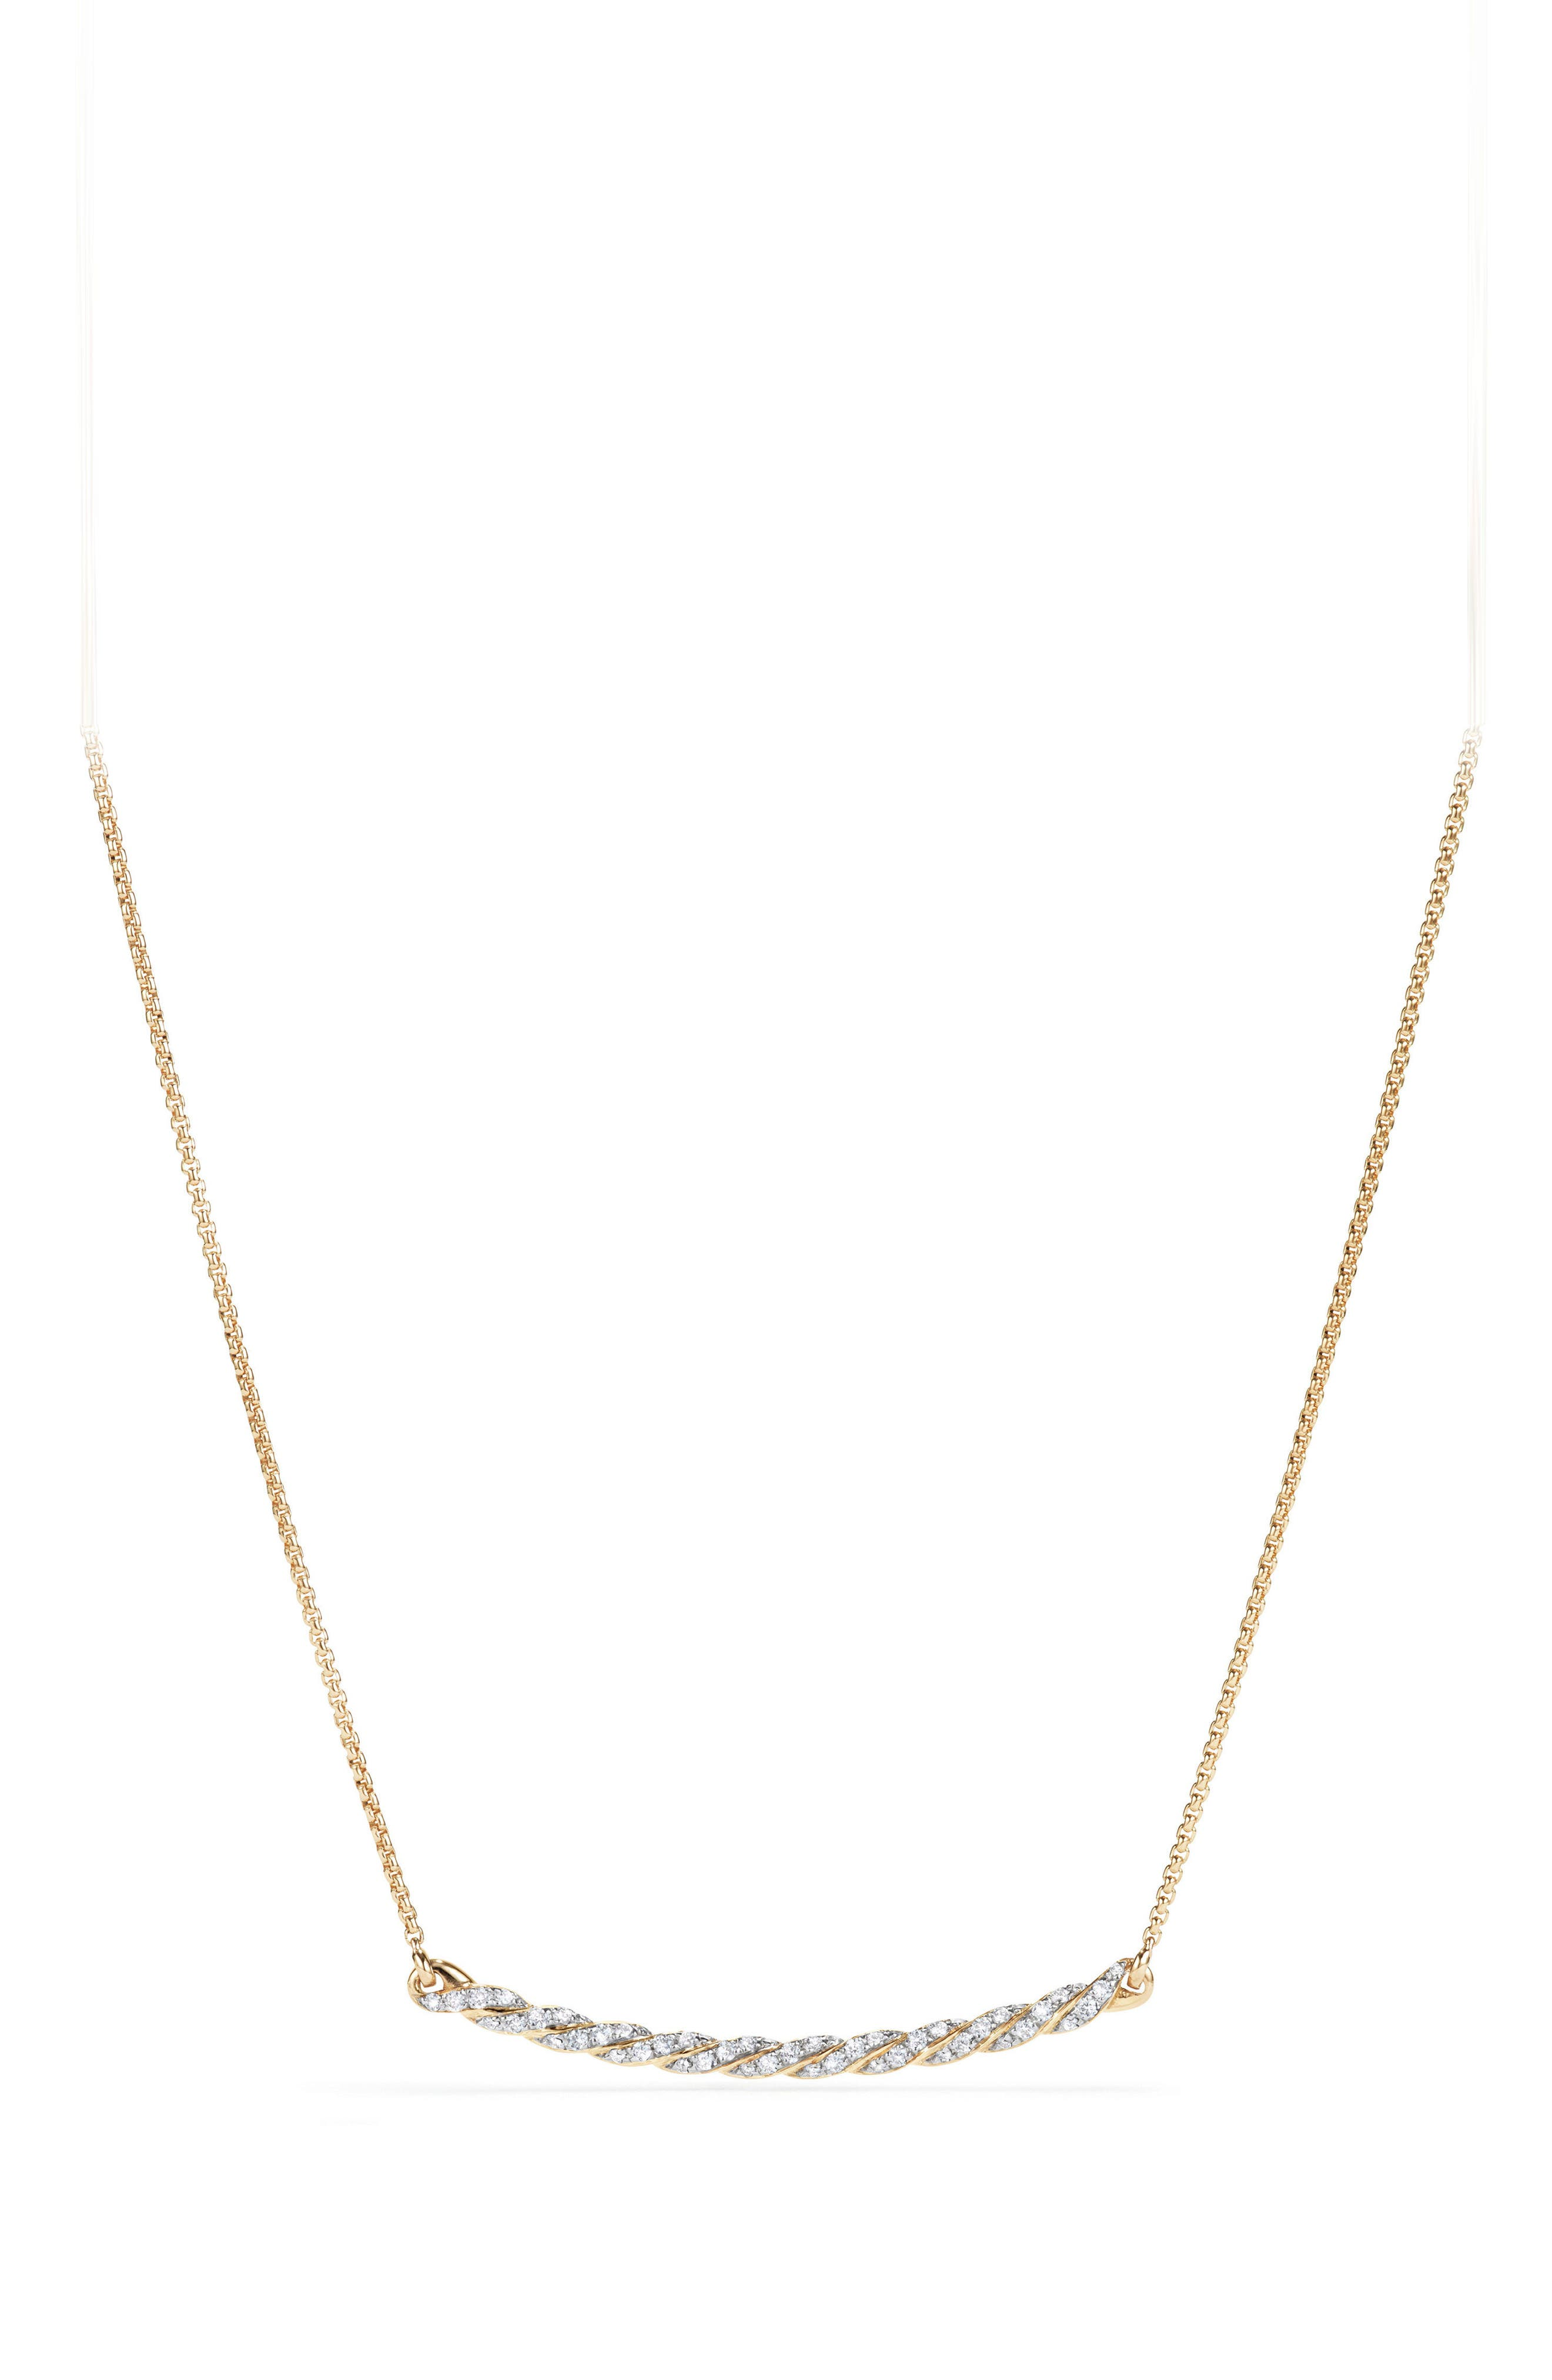 Paveflex Station Necklace with Diamonds in 18K Gold,                             Main thumbnail 1, color,                             Yellow Gold/ Diamond